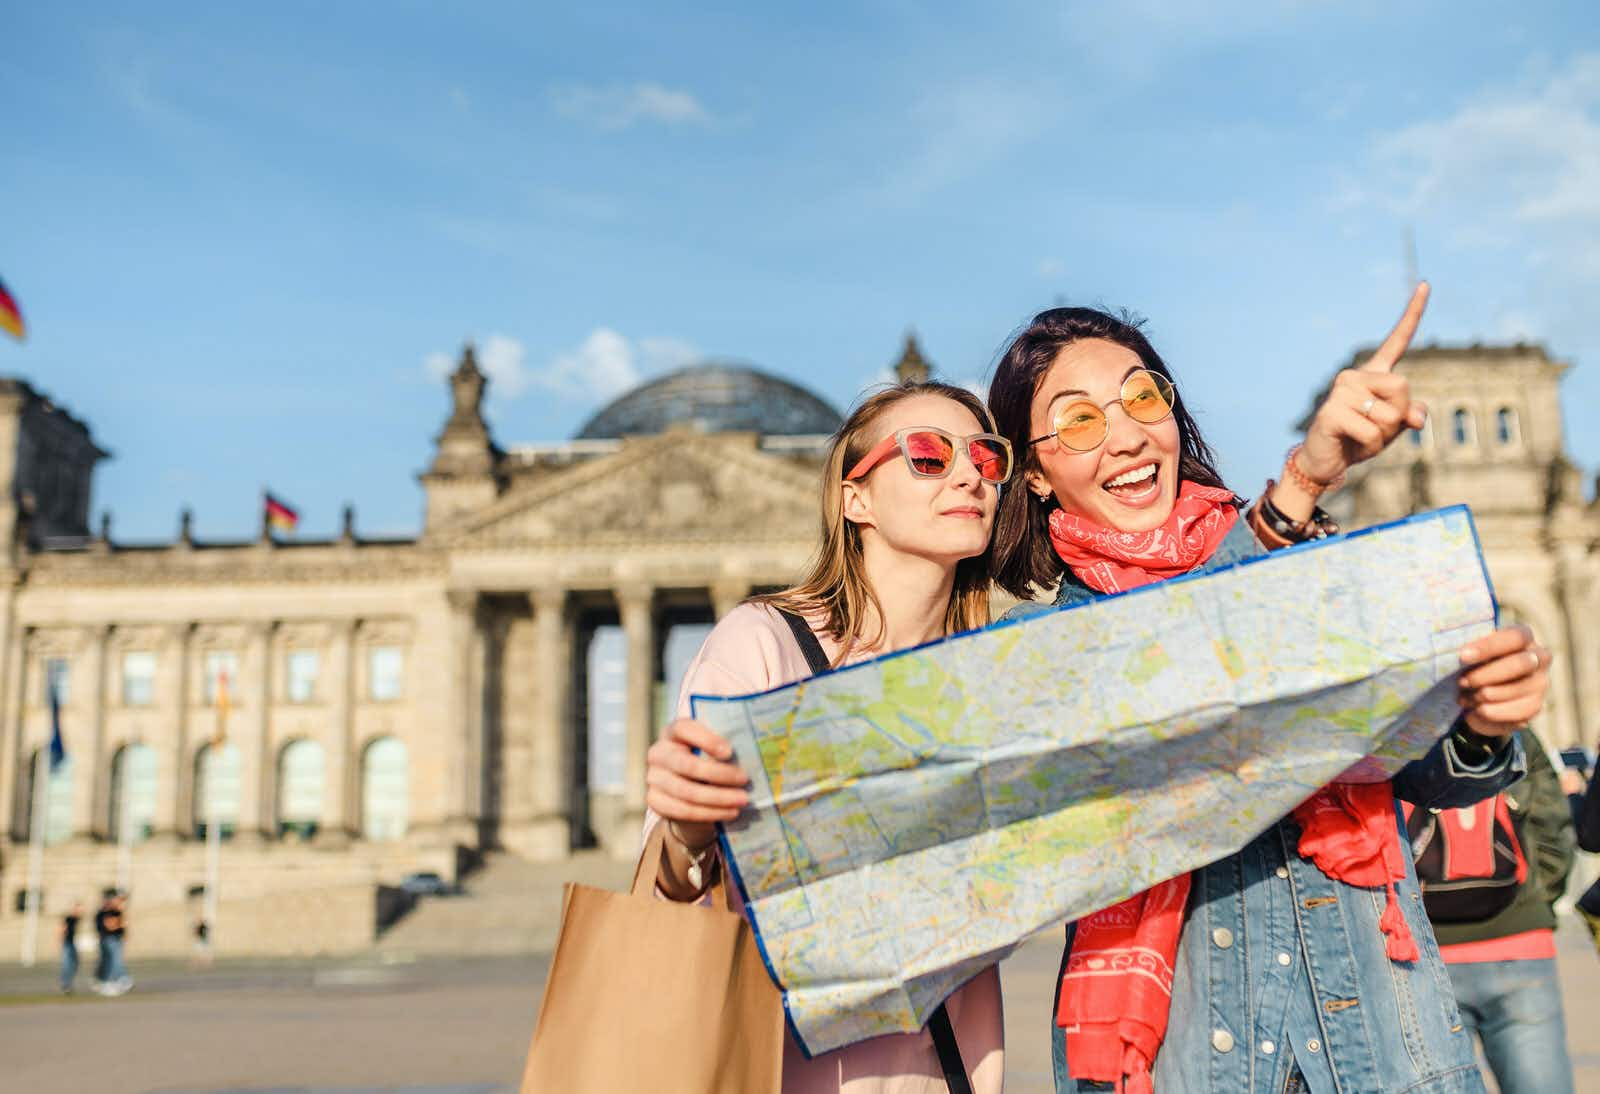 Planning a weekend in Berlin? We've got you covered © frantic00 / Shutterstock